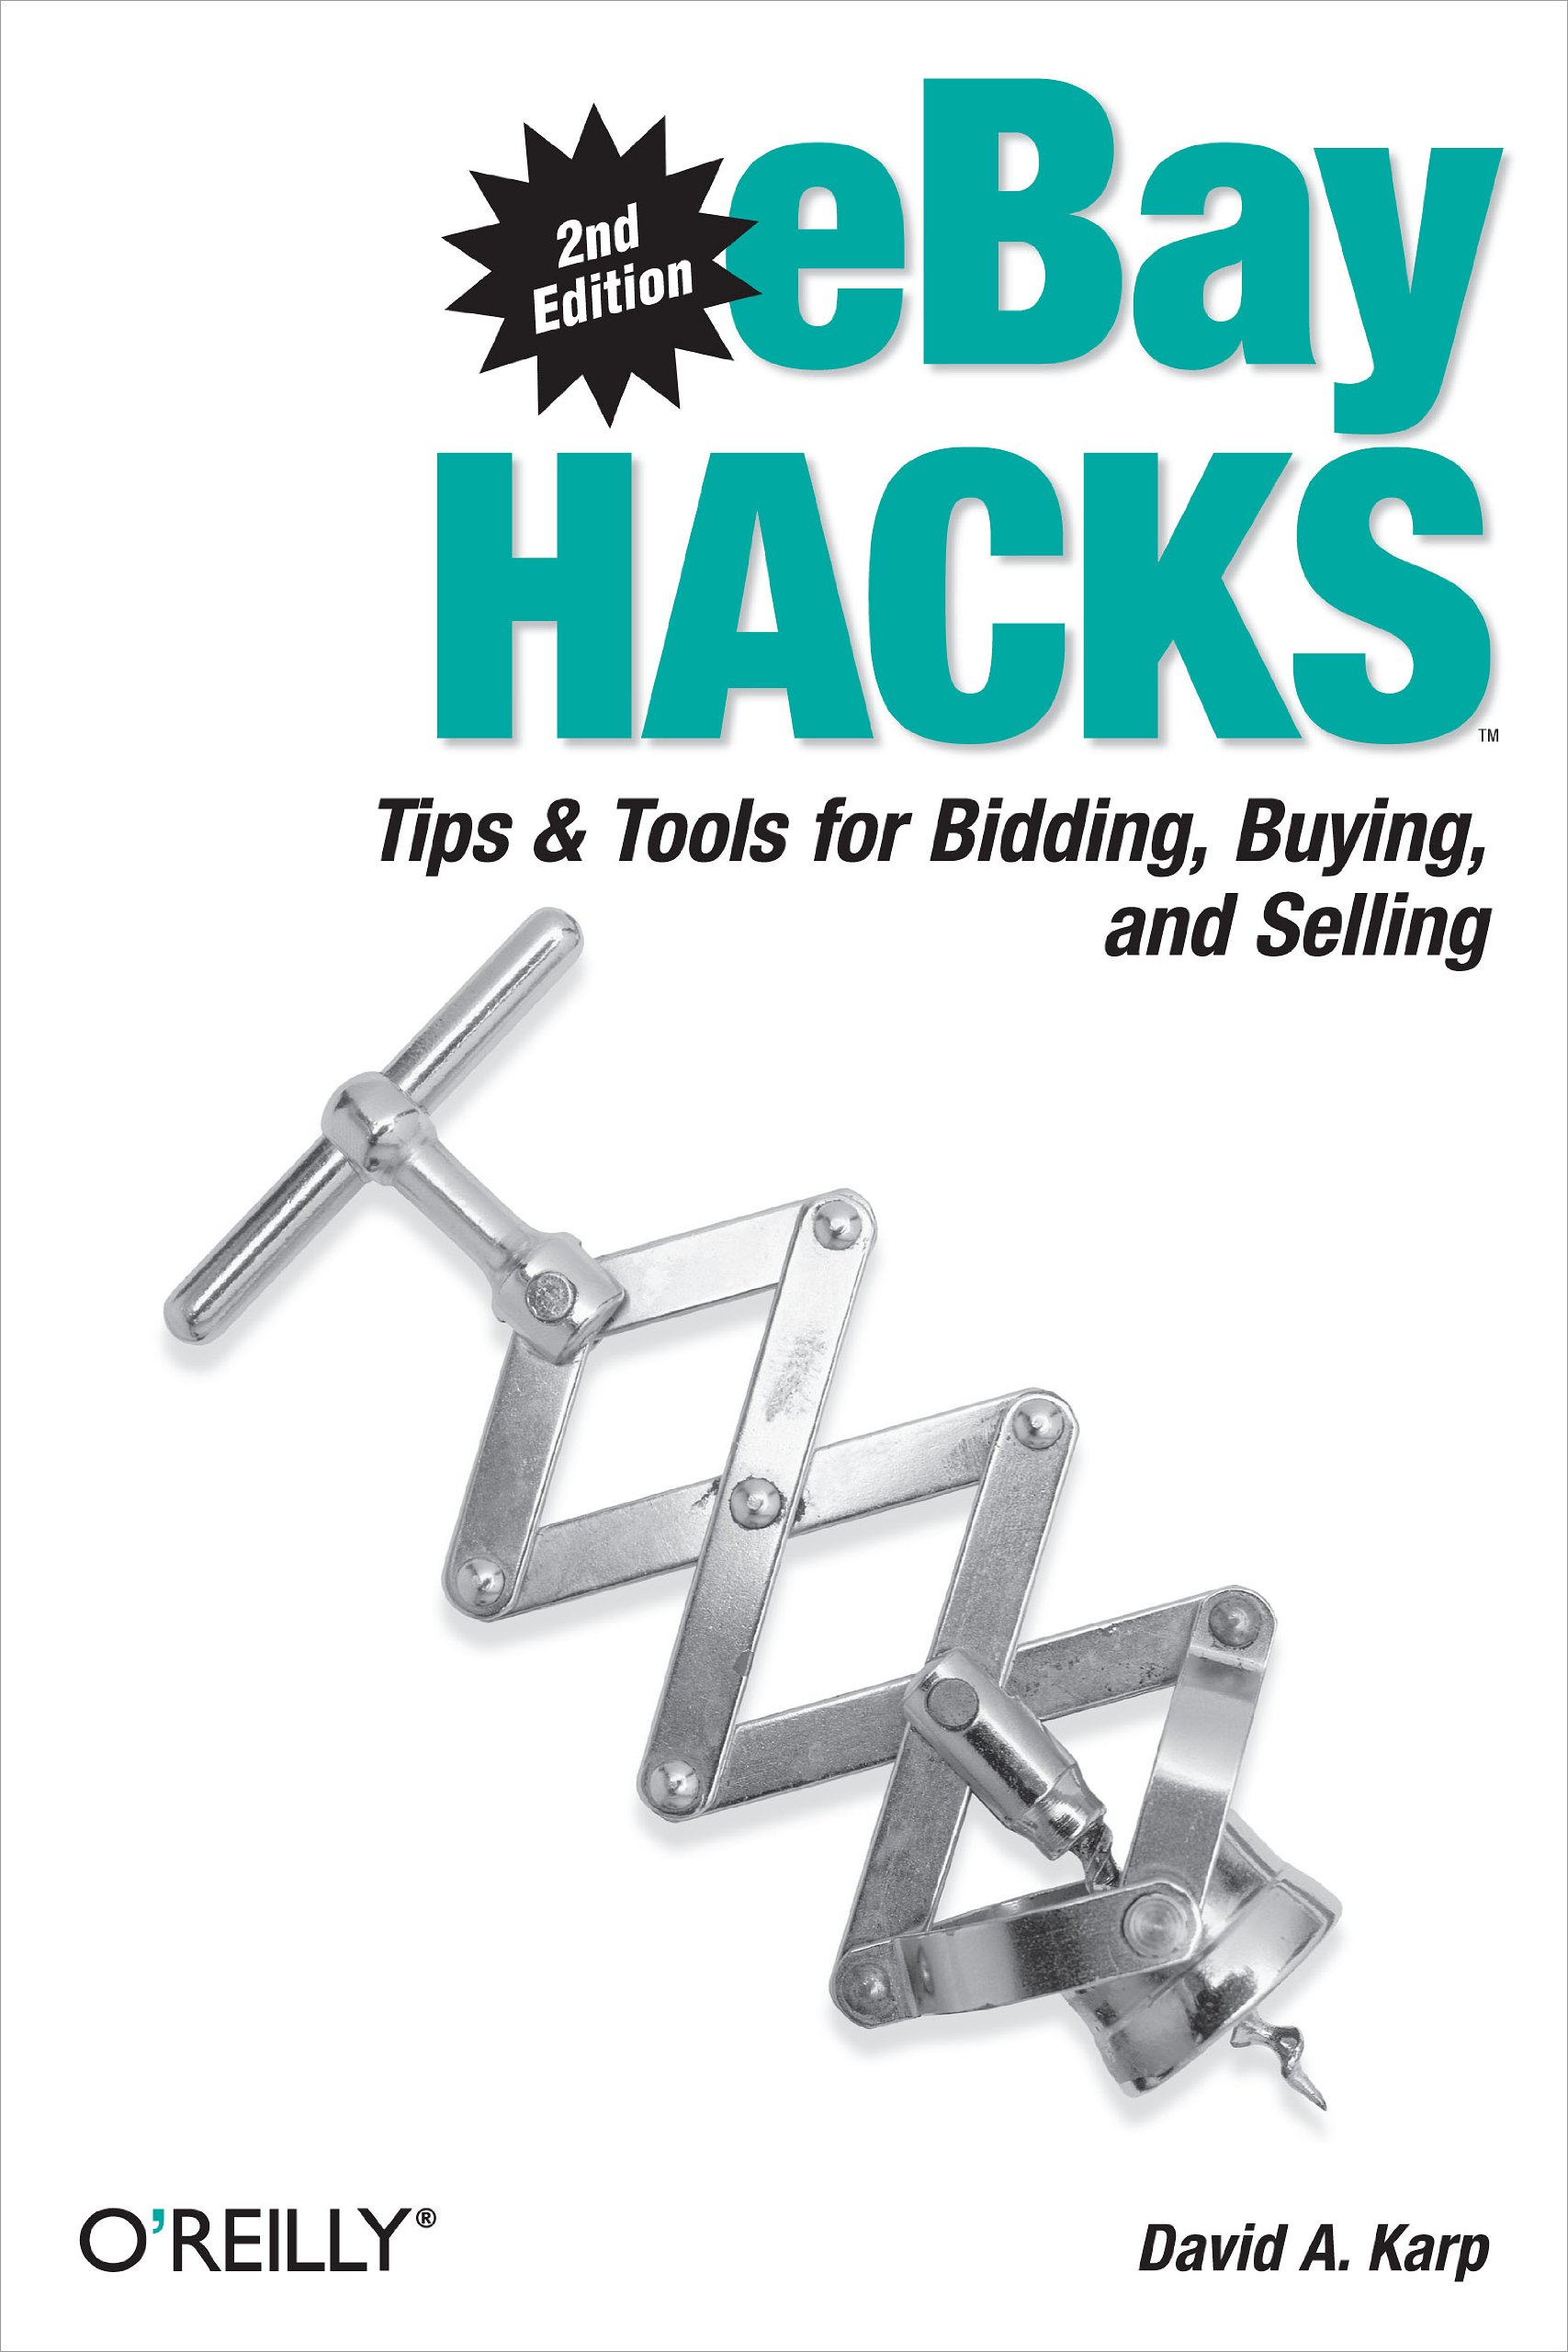 Amazon Com Ebay Hacks Tips Tools For Bidding Buying And Selling O Reilly S Hacks Series Ebook Karp David A Kindle Store